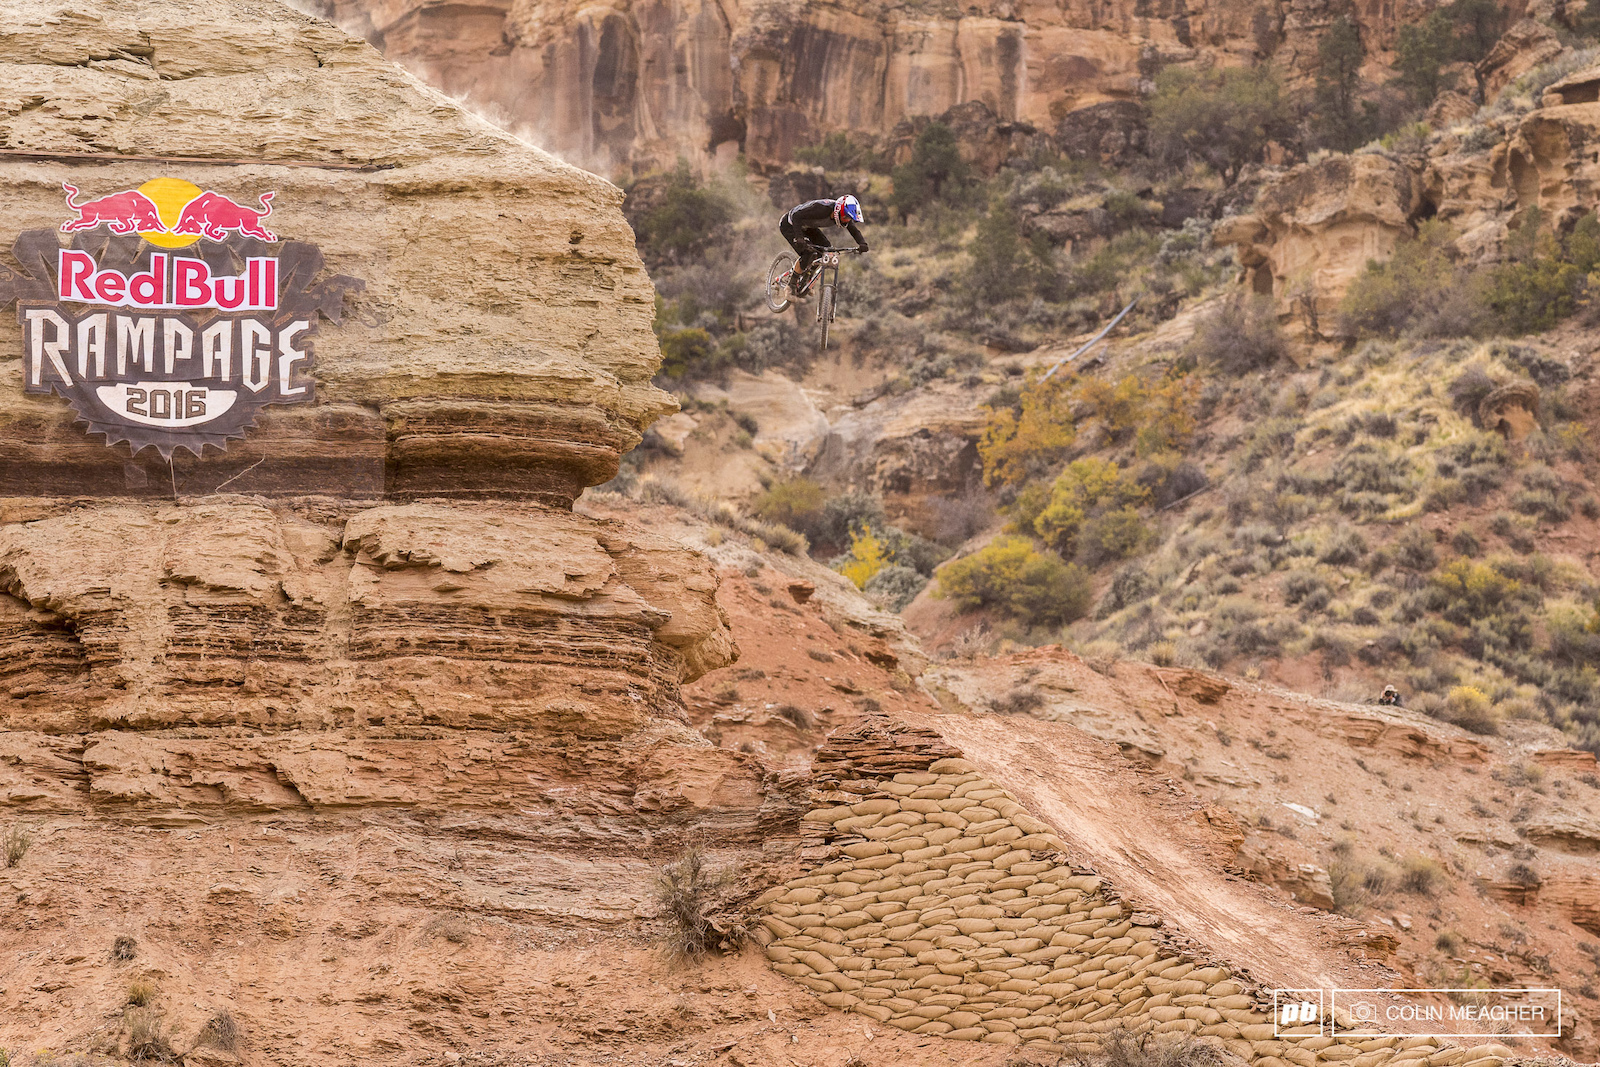 Falling from the sky step one enter the Redbull Rampage. Step two build a ridiculous line. Step three SEND IT Carson Storch falling into third place.